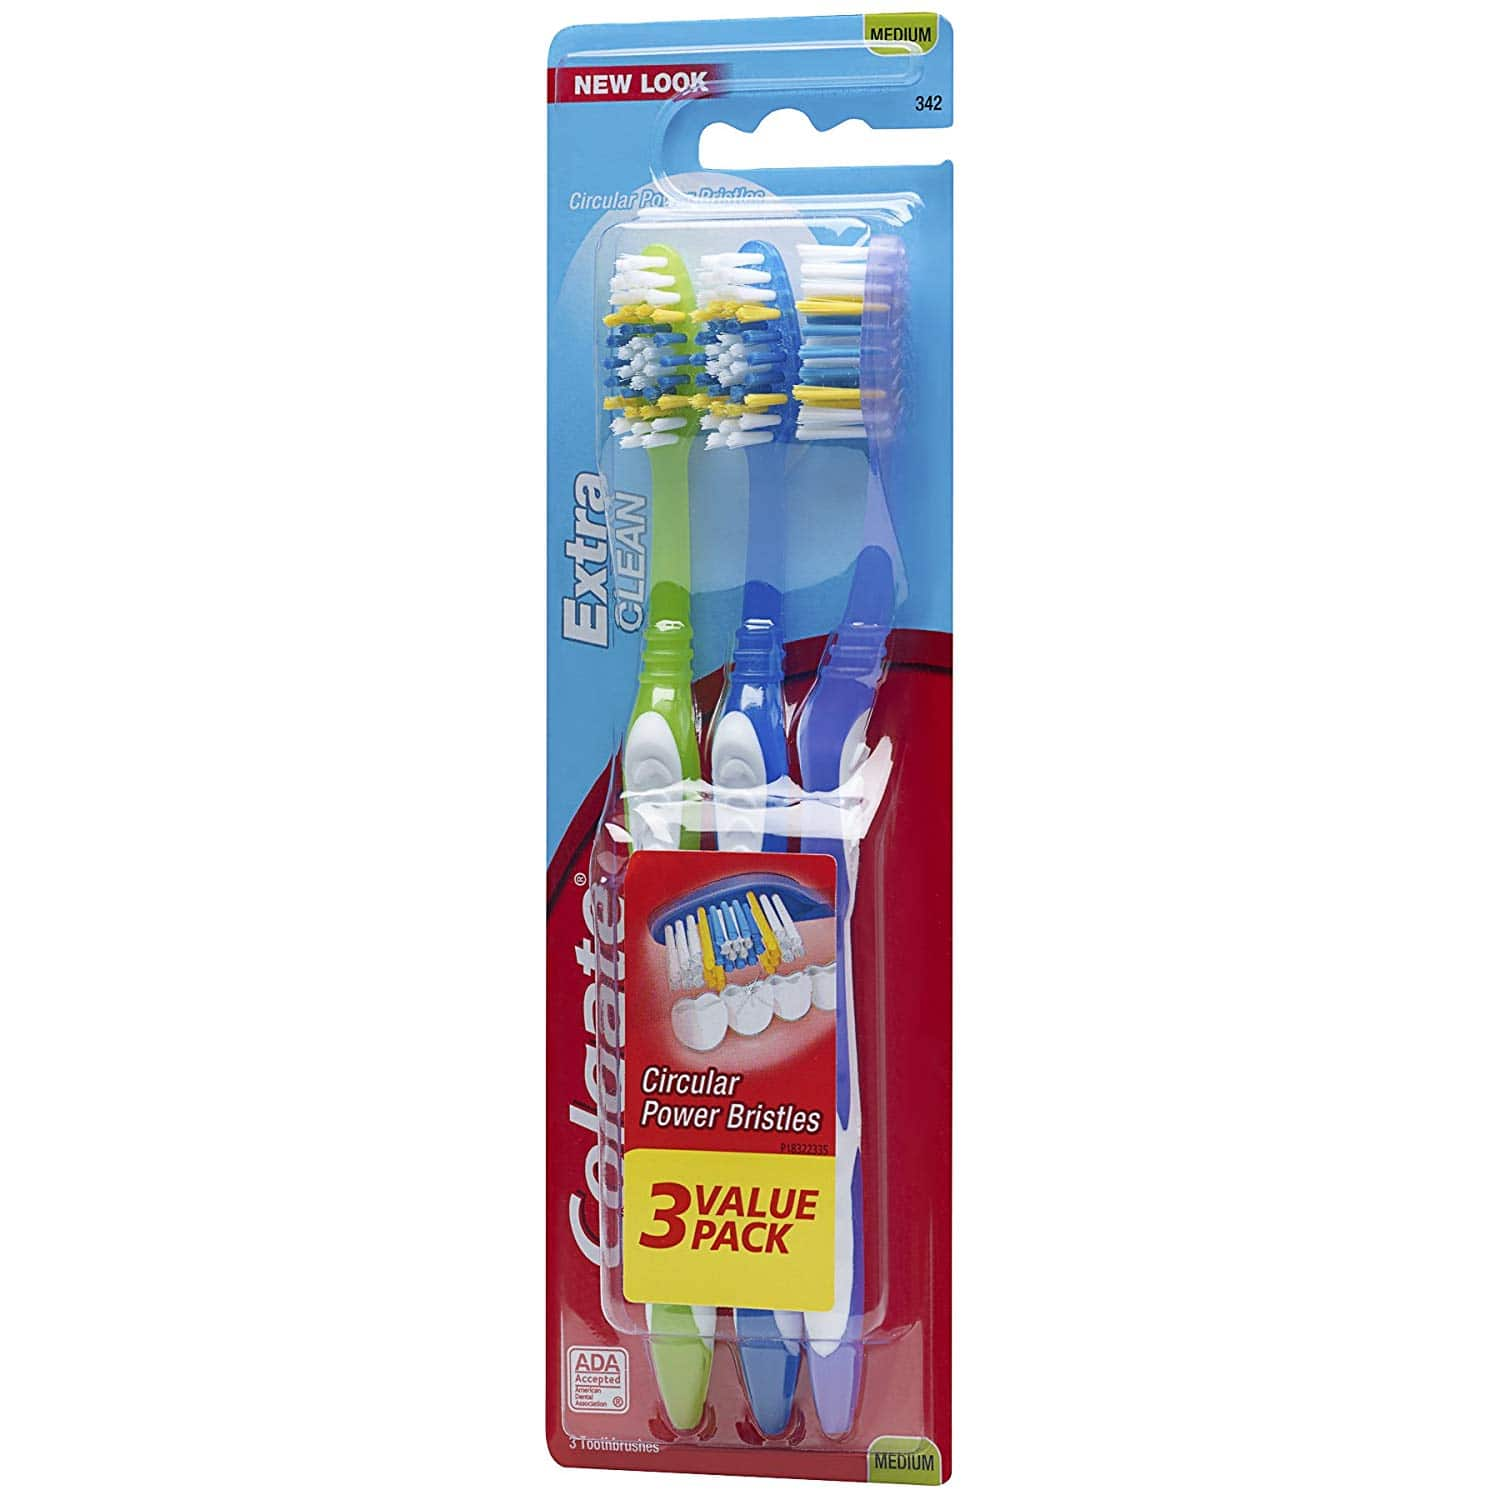 3-Pack Colgate Extra Clean Full Head Toothbrush [Medium] for $2.11 w/ S&S